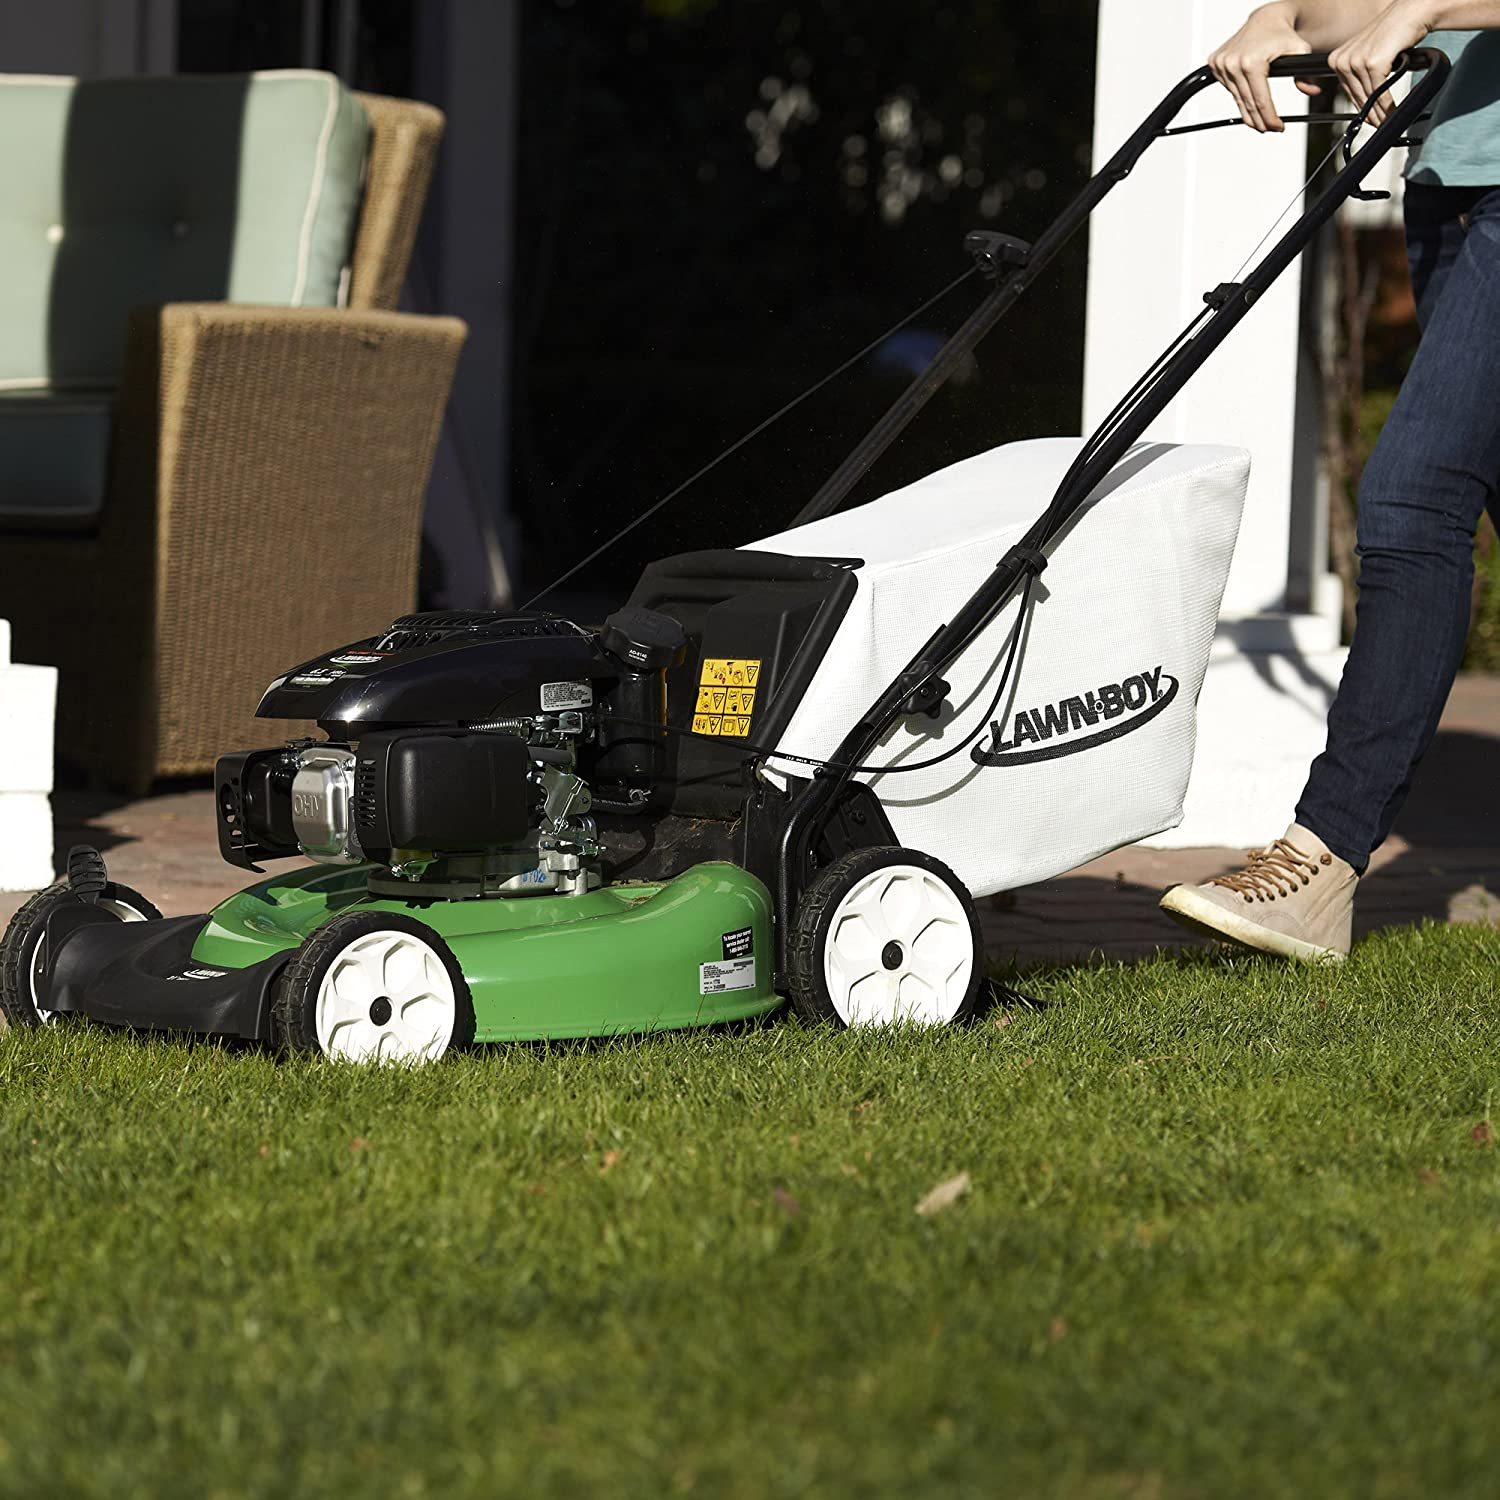 lawn-boy 17732 reviews